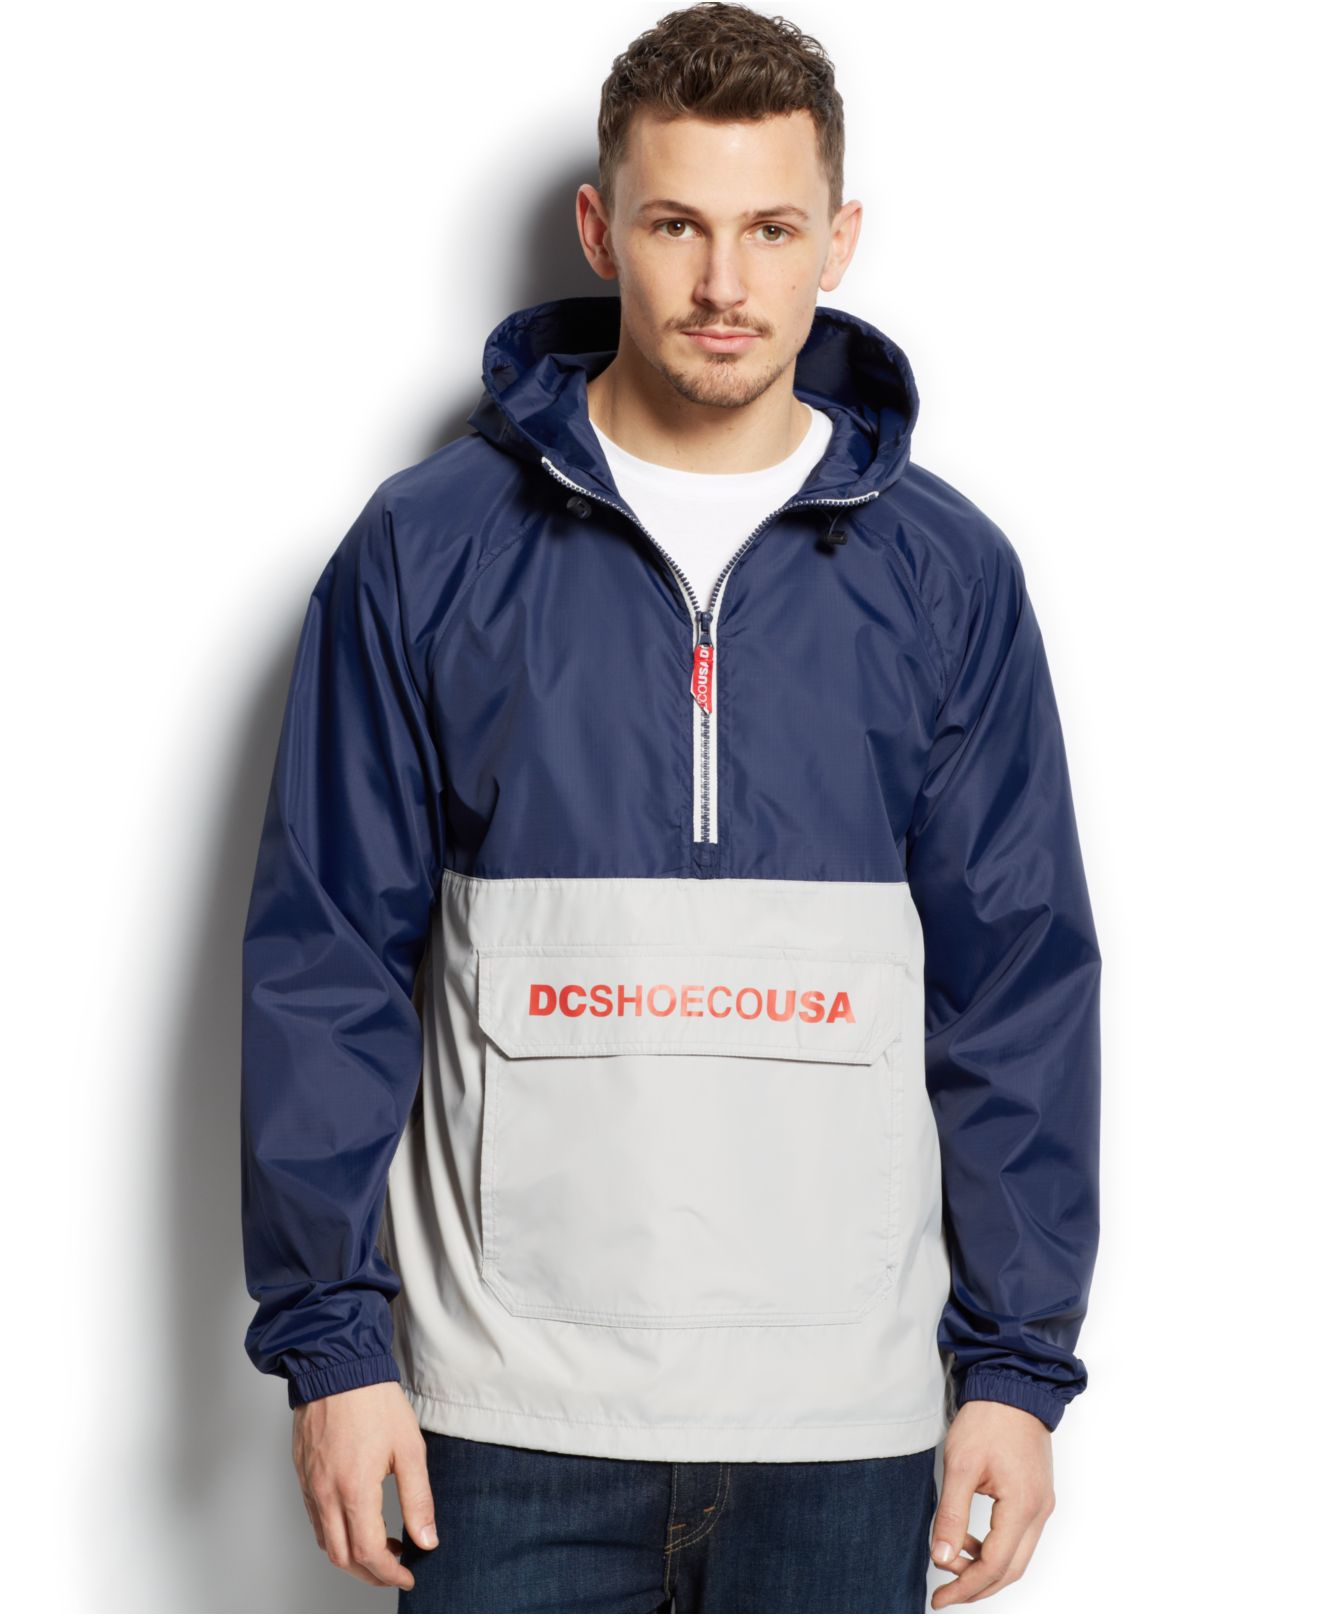 Pullover Windbreaker Jackets For Men - Pl Jackets